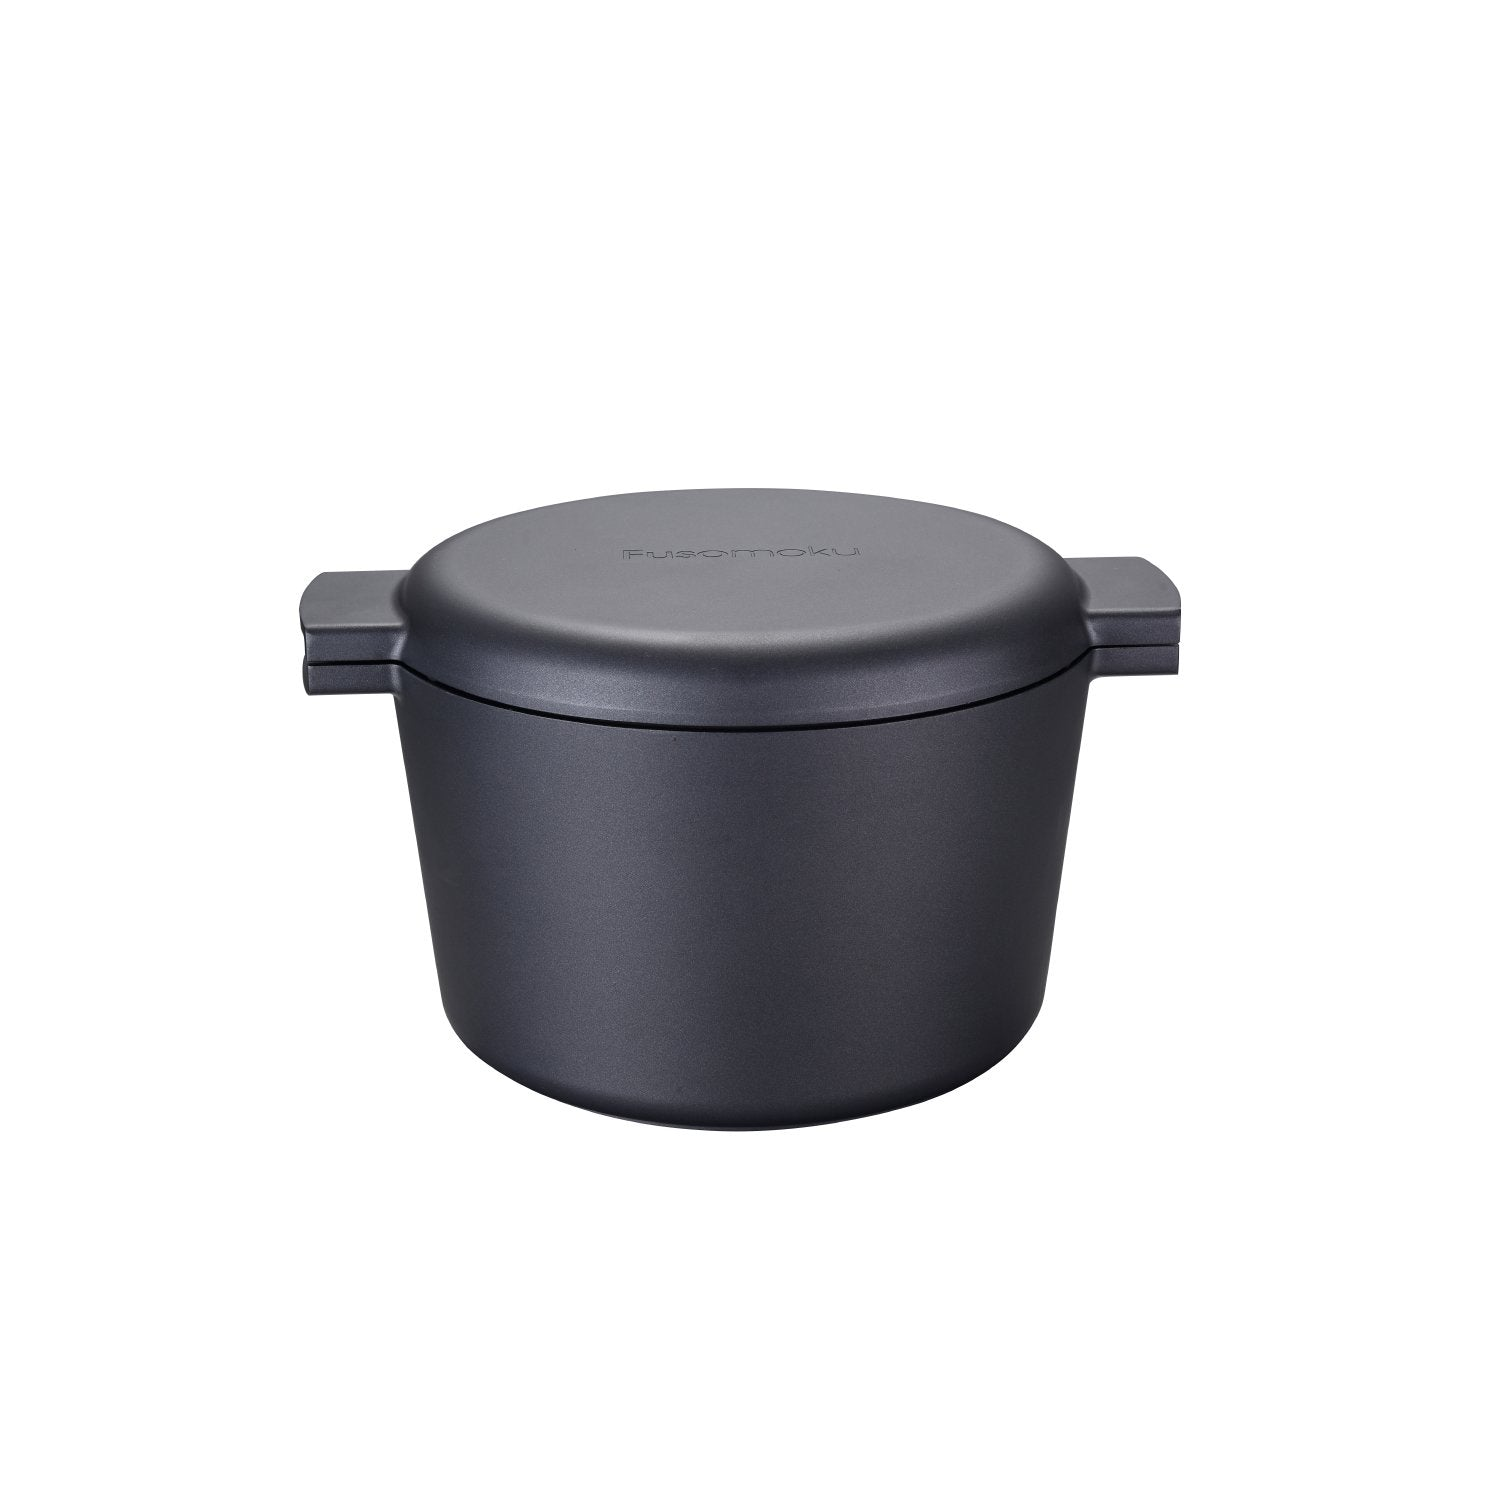 Greblon C2 Non-Stick Coated Die-Cast Aluminum Round Induction Casserole Pan & Lid with Wood Moulding Handle